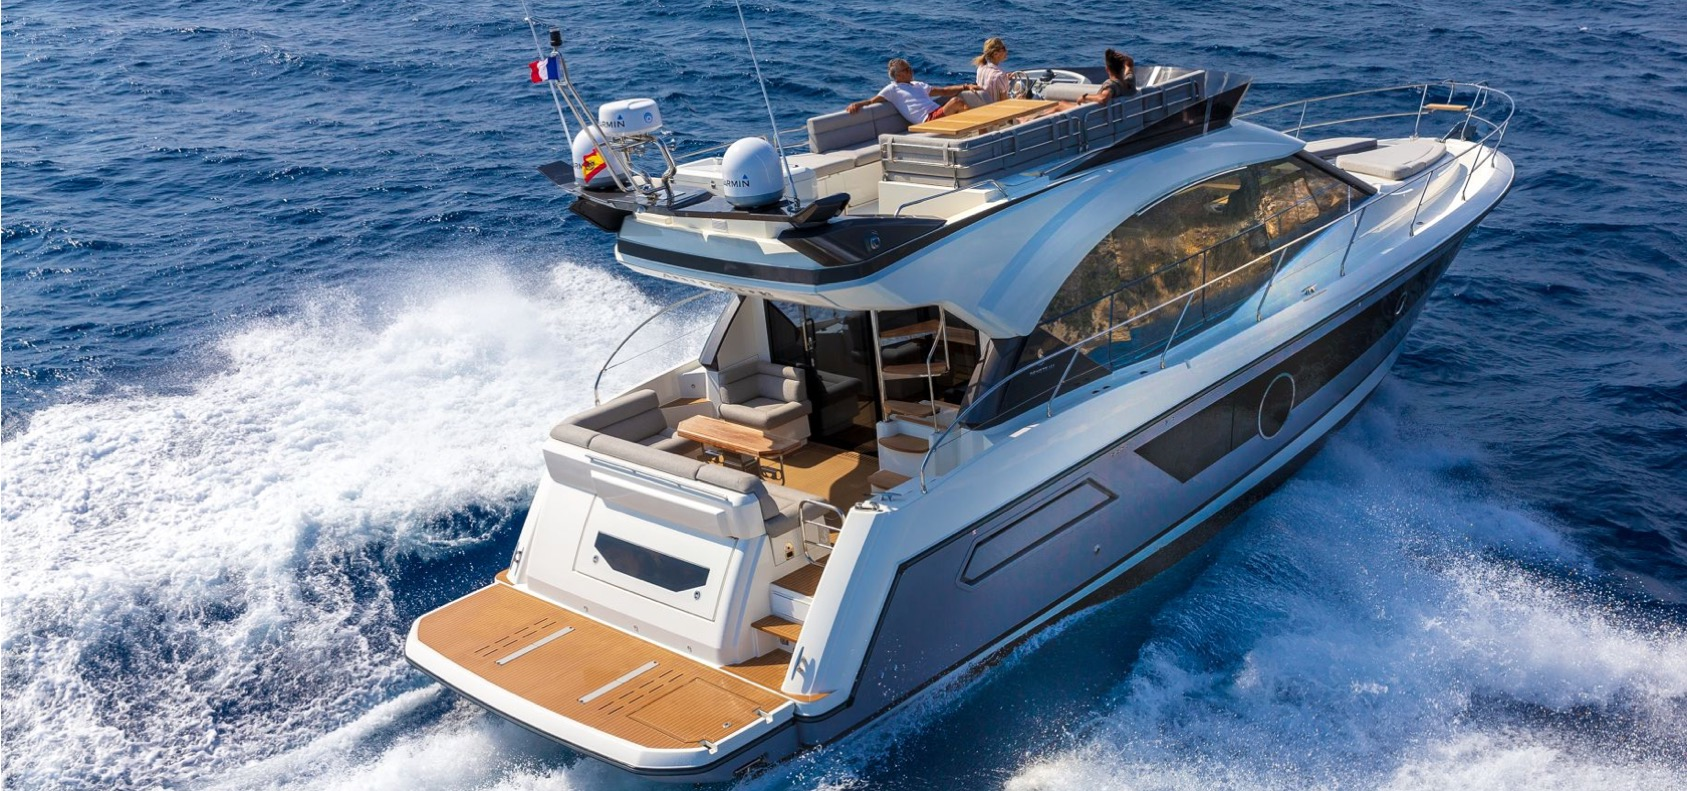 Why Your Next Boat Should Be a Powerboat or Speed Boat